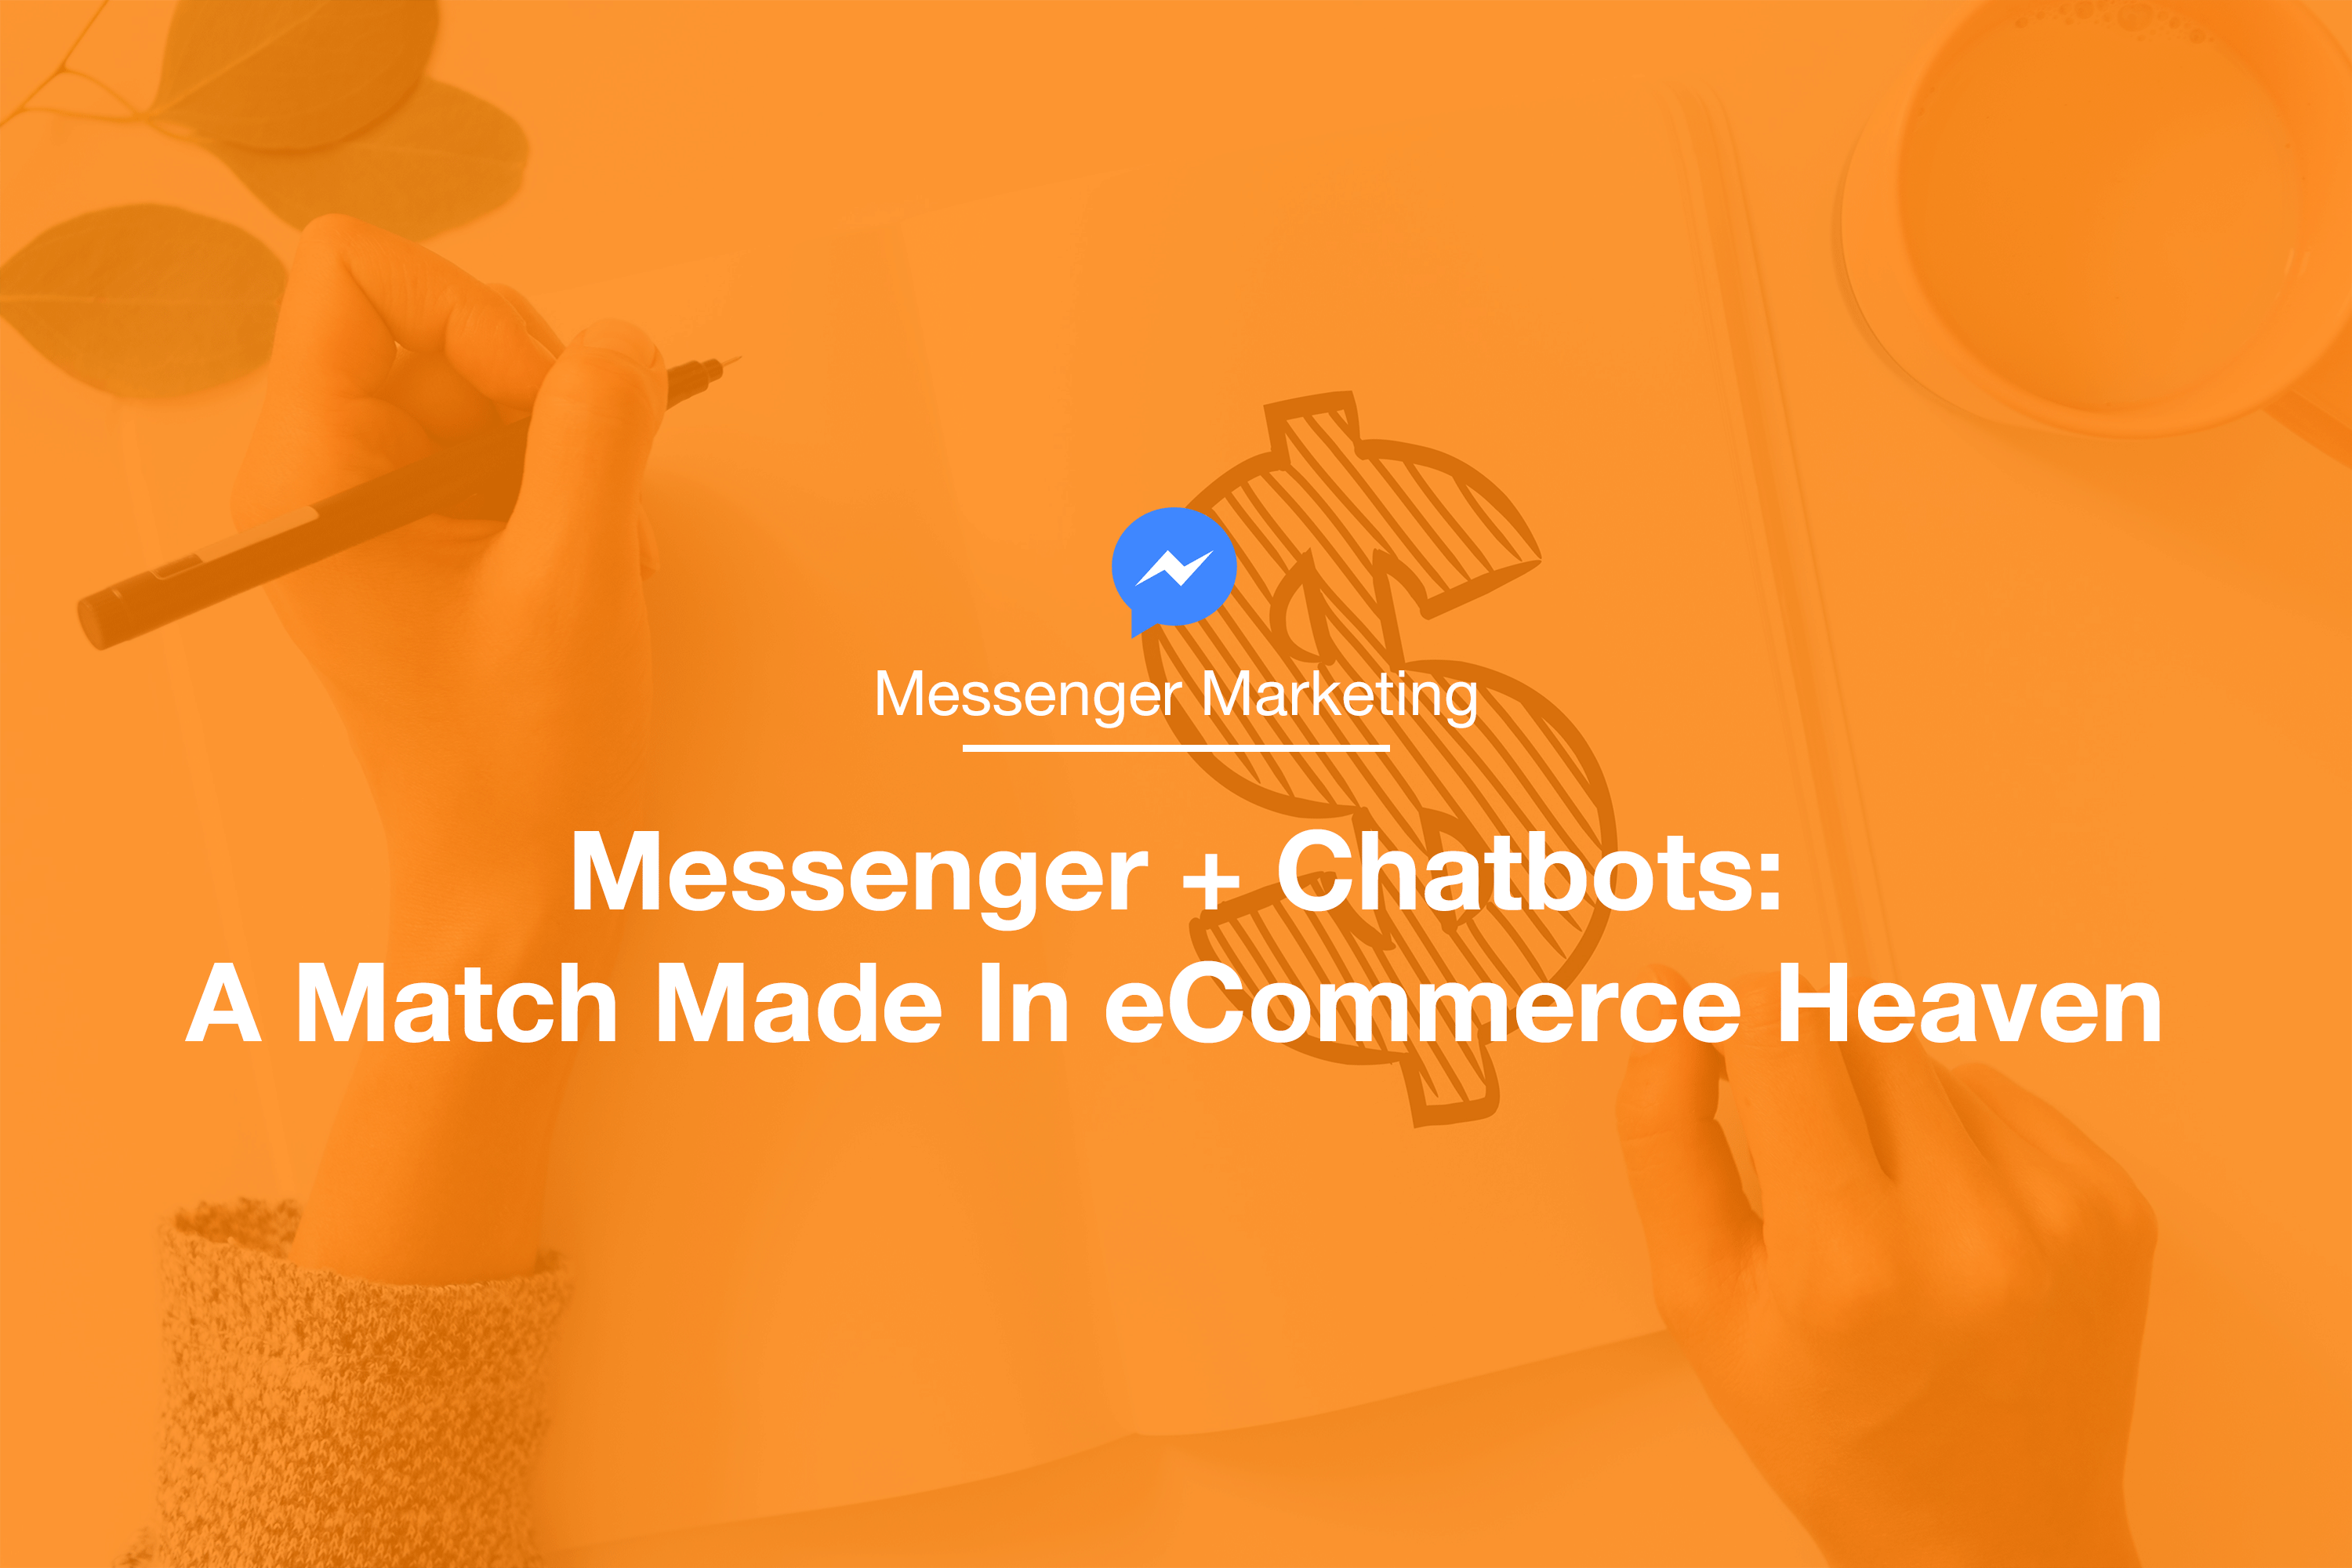 Messenger & Chatbots: A Match Made in eCommerce Heaven